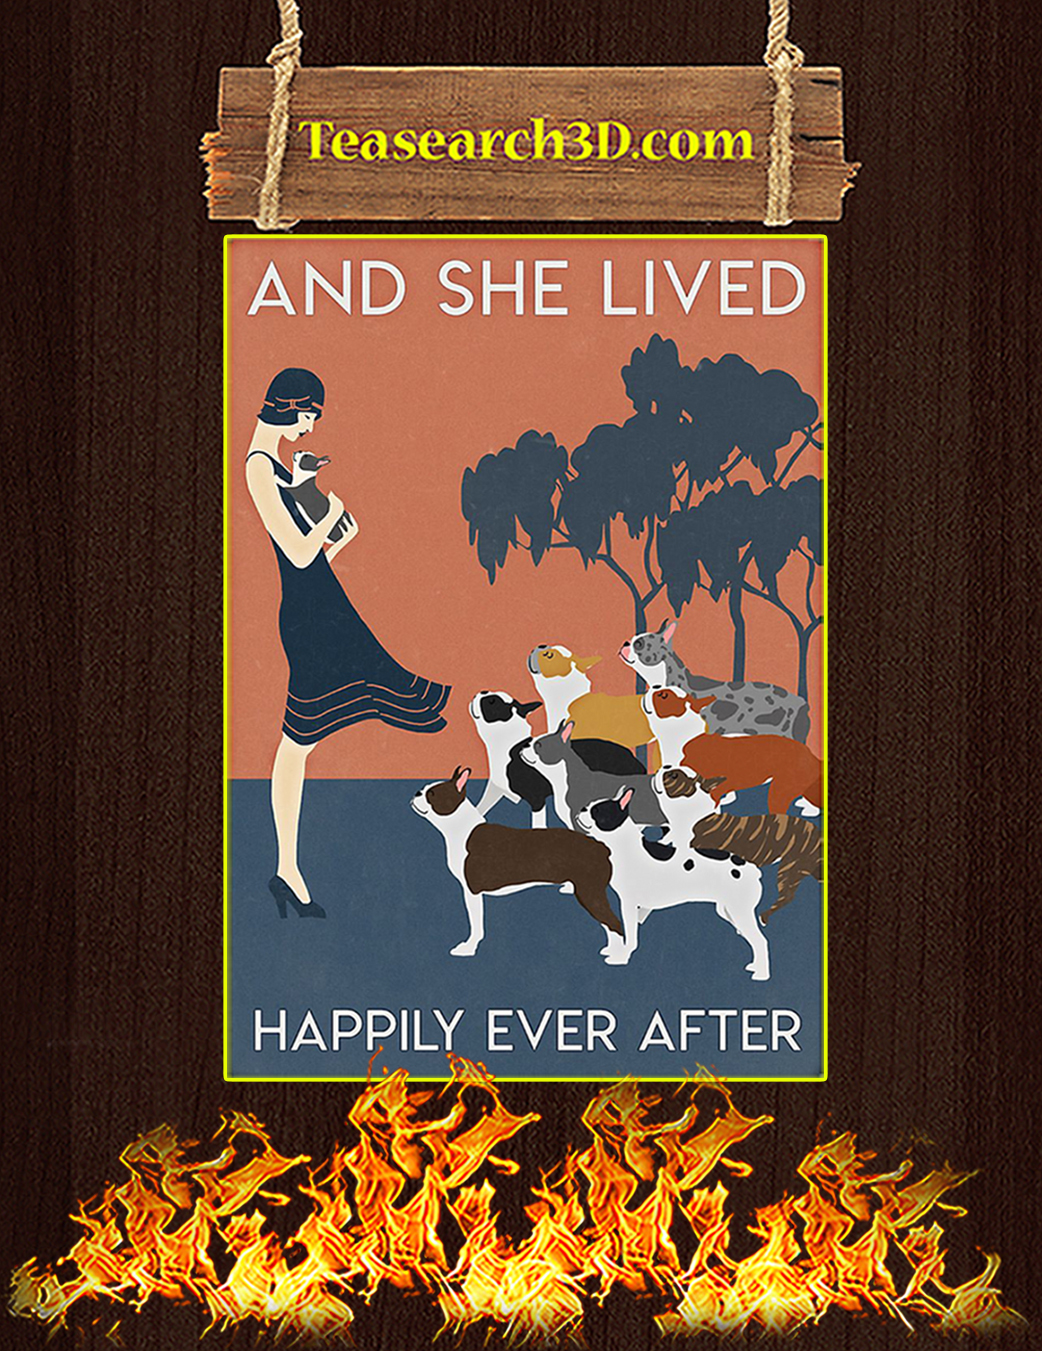 Boston terrier And she lived happily ever after poster A1